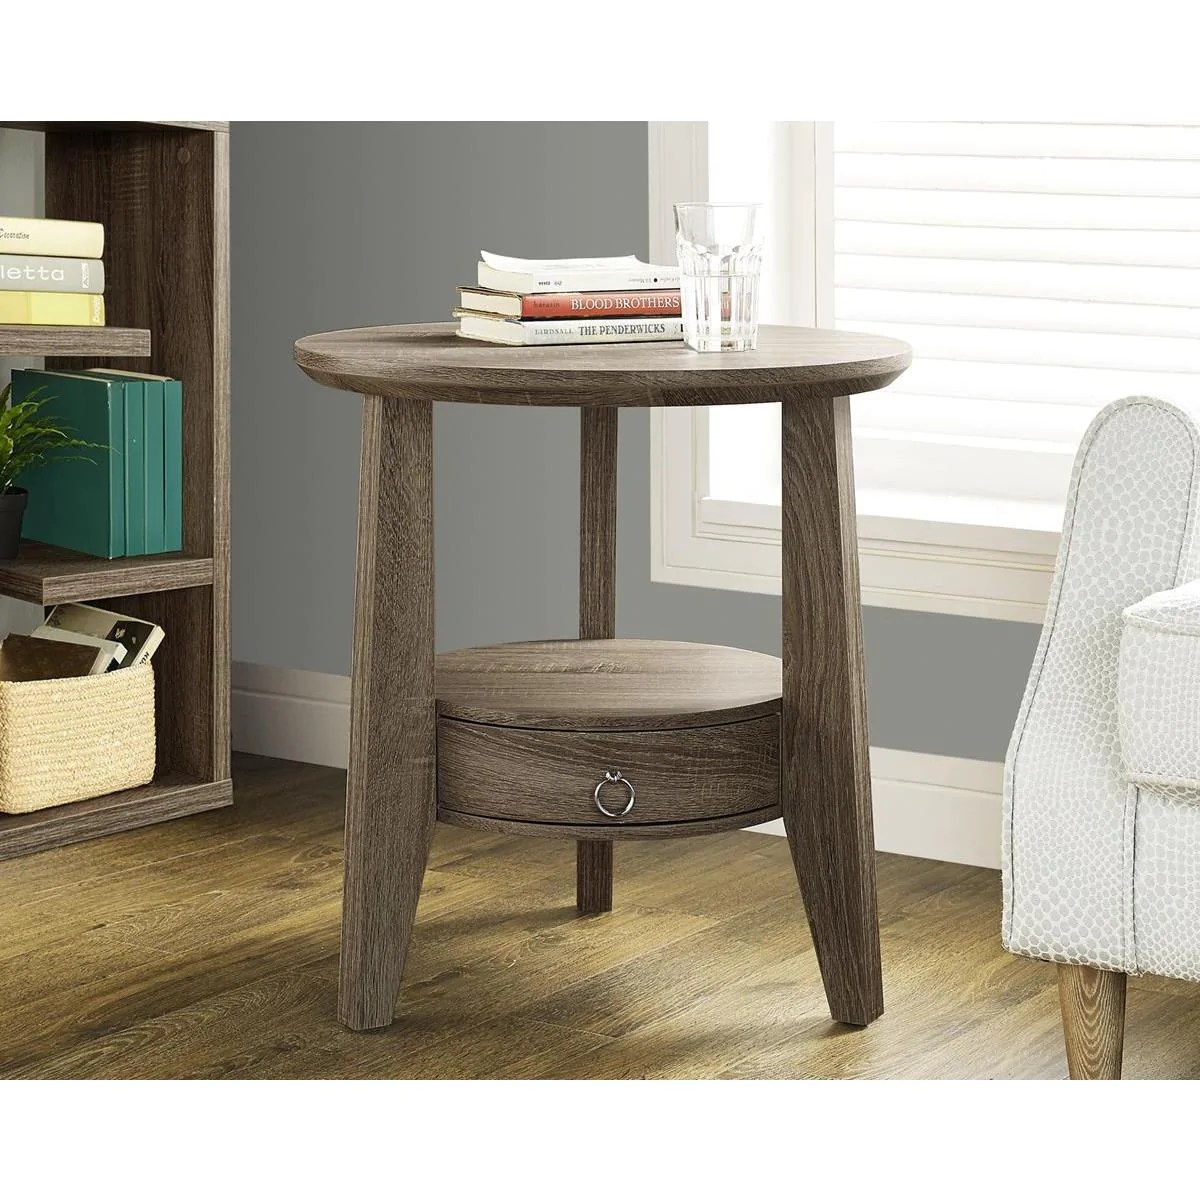 monarch specialties mirrored 38 sofa console table with drawers bridgewater style dark taupe reclaimed look accent